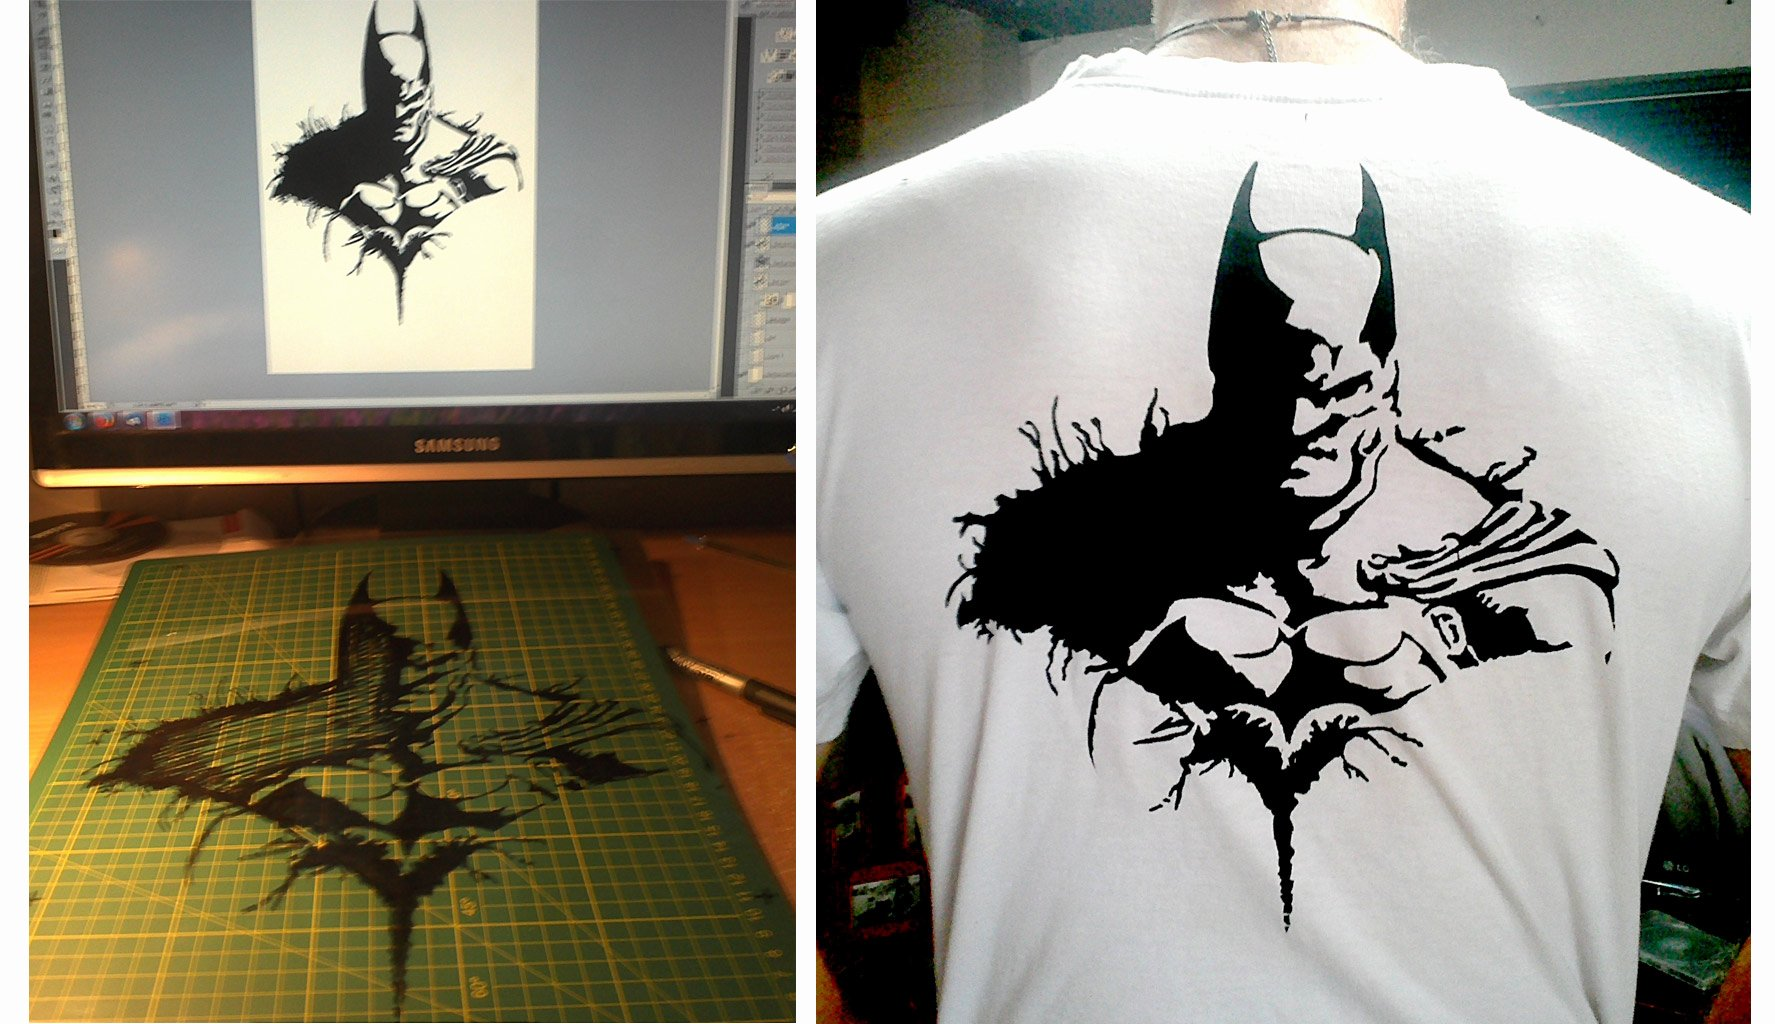 Batman Stencil Art Lovely Batman Stencil by Telephunkn On Deviantart